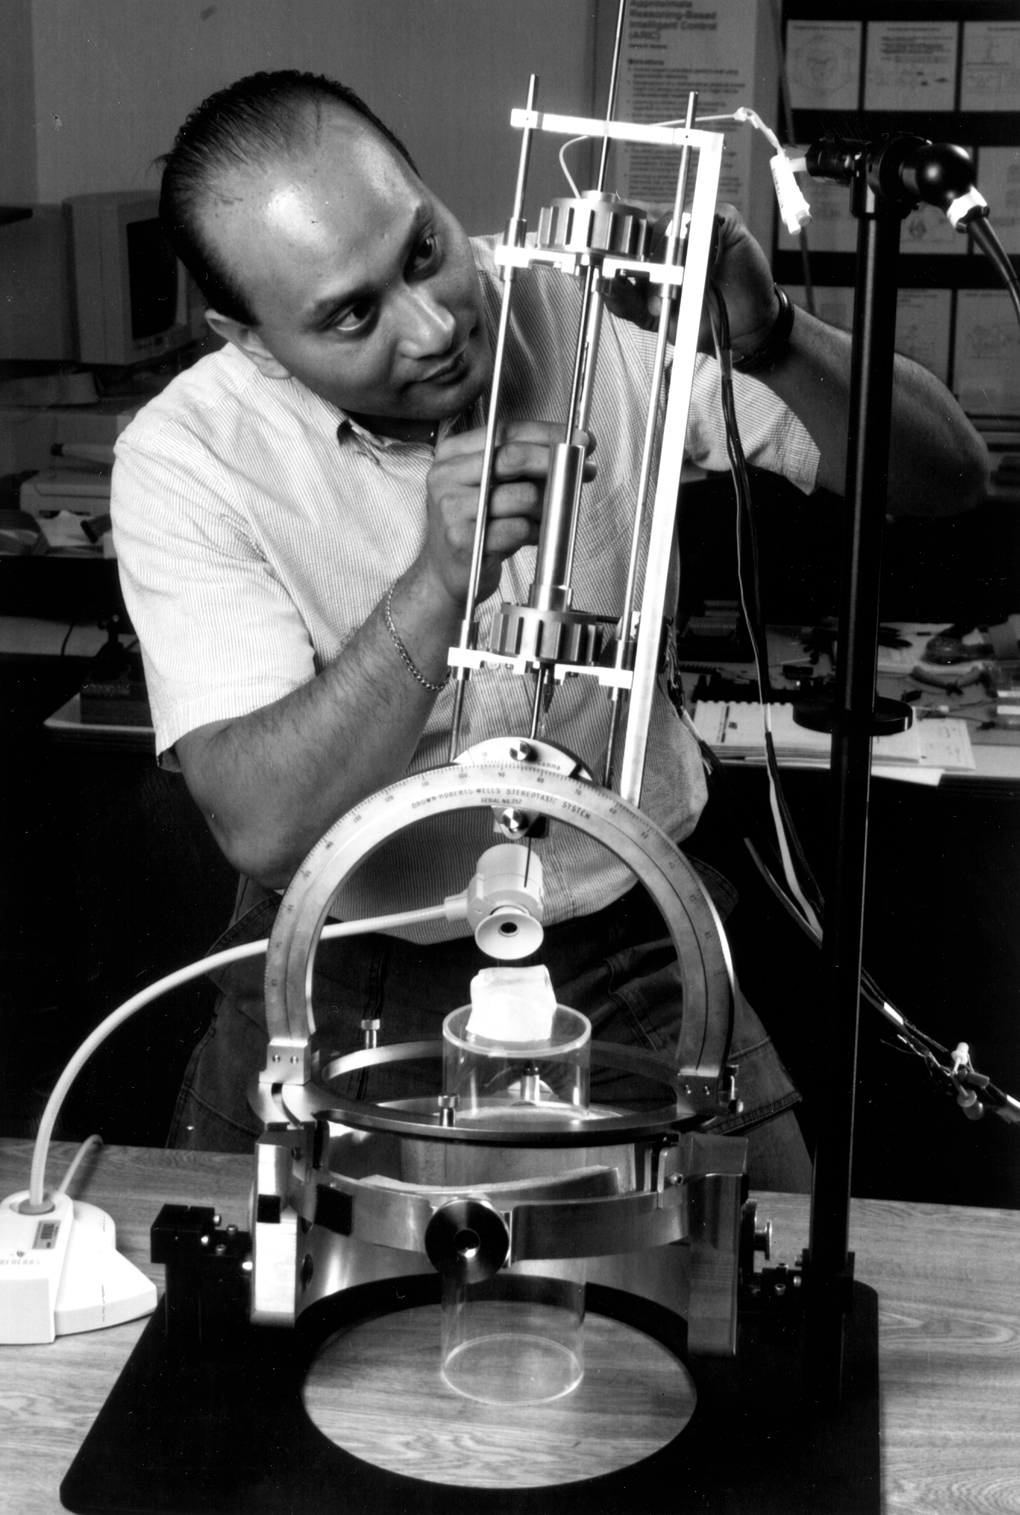 Space History Photo: NASA Robot Brain Surgeon